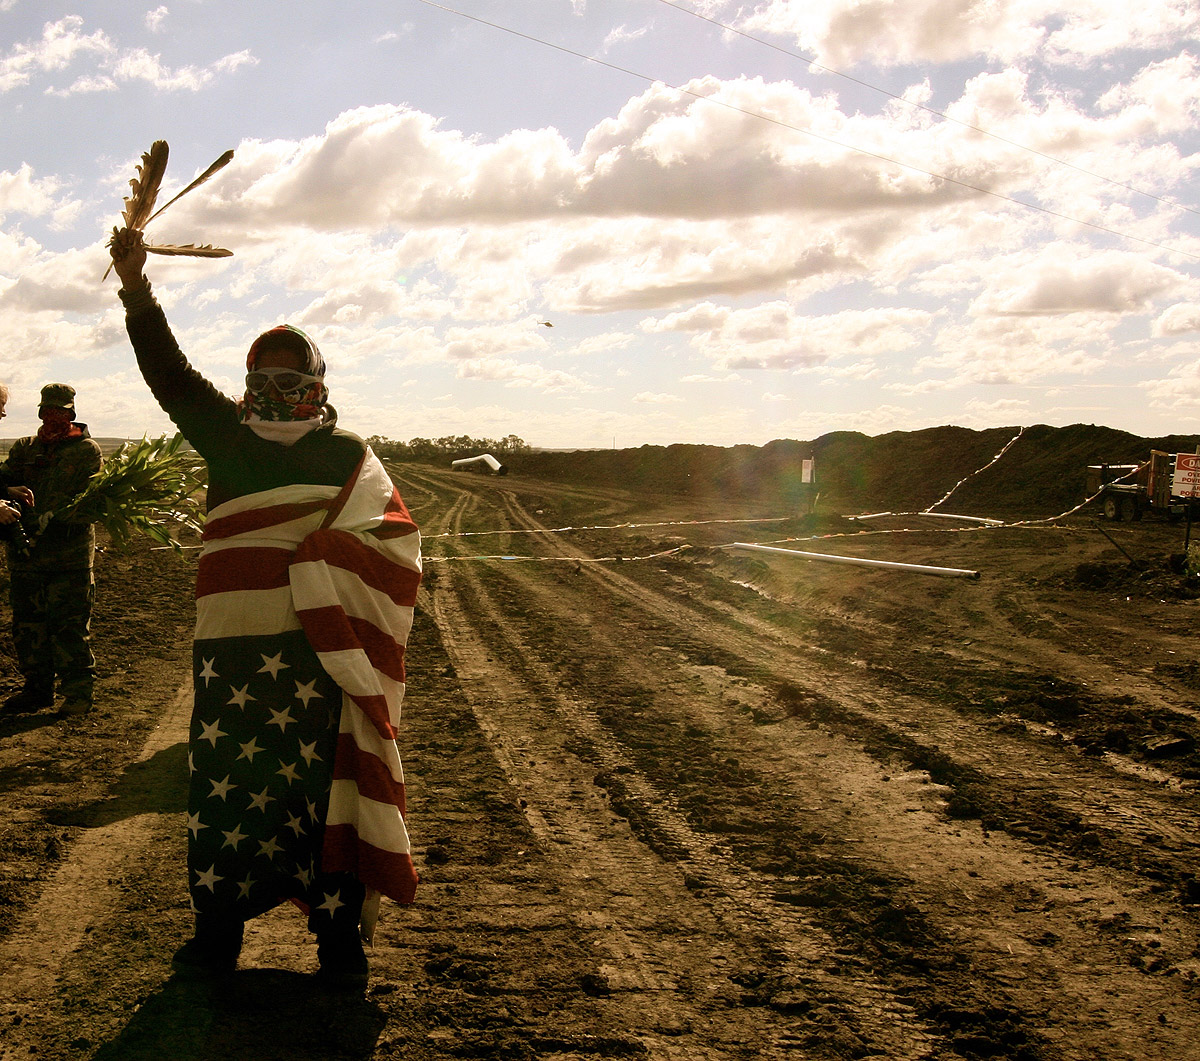 Native protestor wrapped in American flag and holding raptor feathers